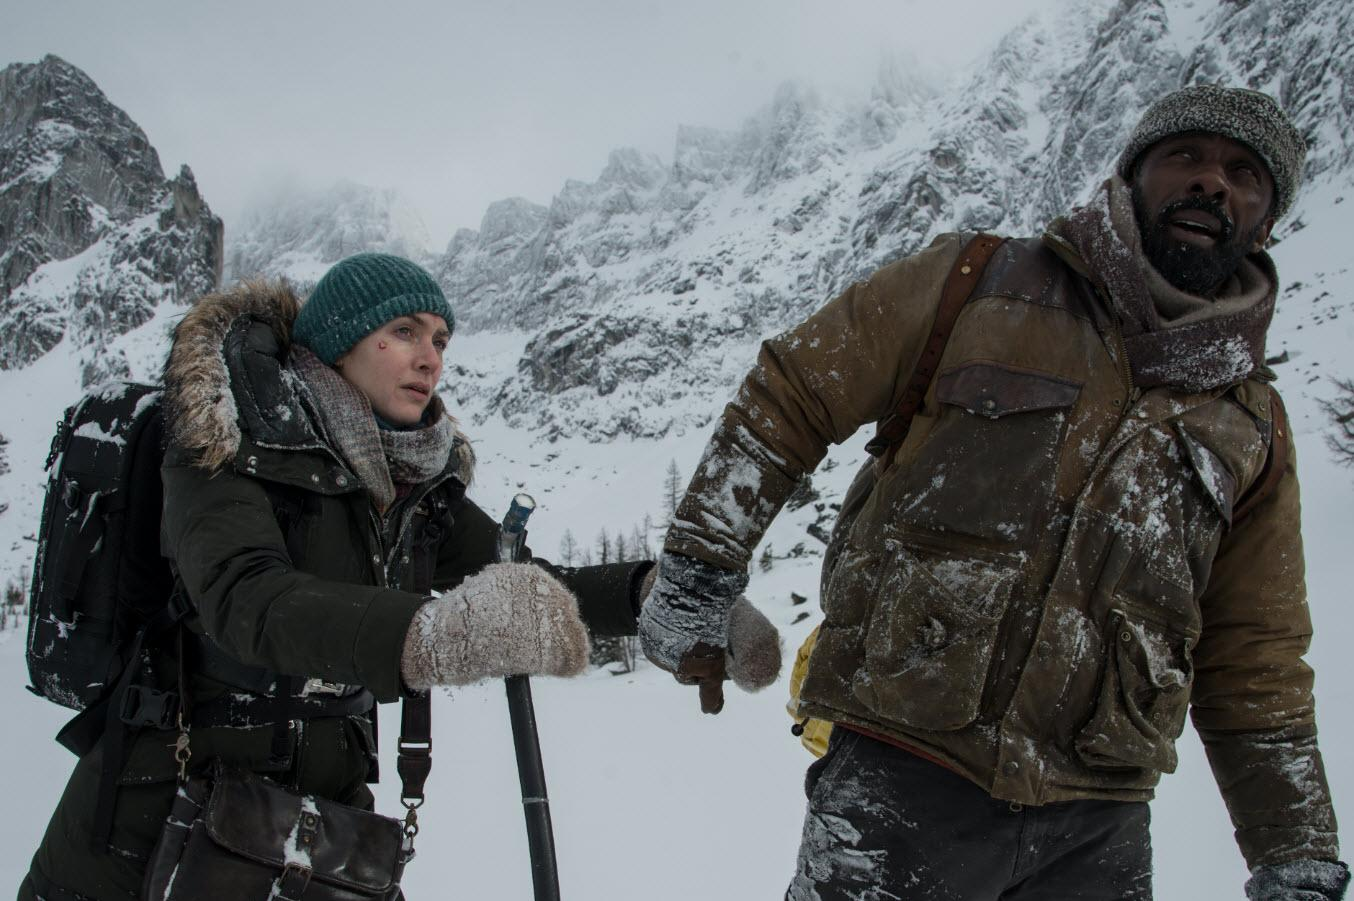 Kate Winslet and Idris Elba in 'The Mountain Between Us' (credit: 20th Century Fox)